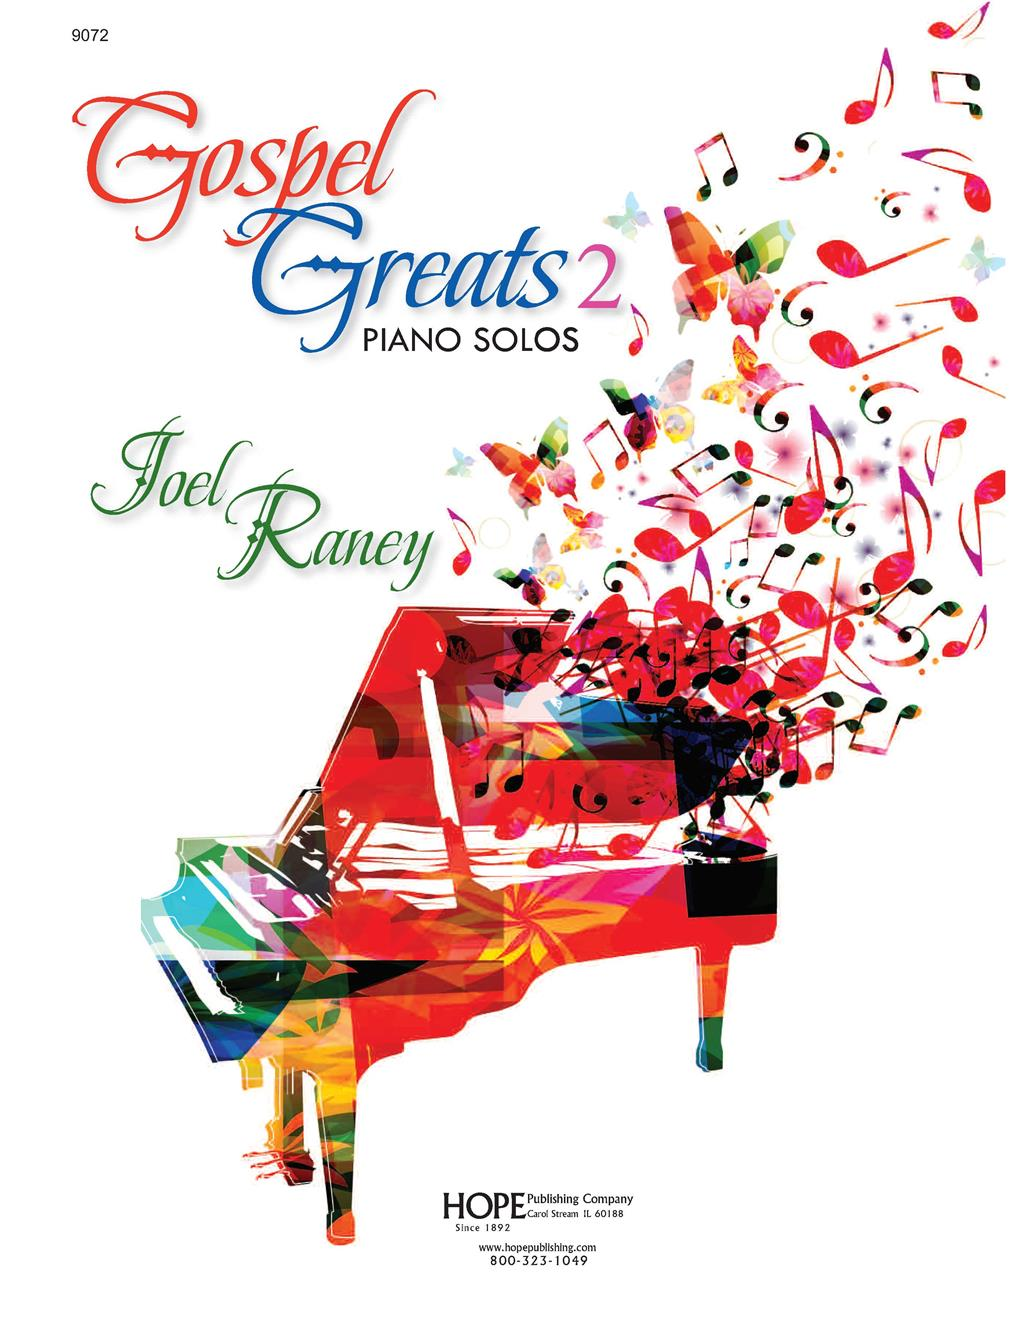 Gospel Greats 2 - Piano Solos Cover Image